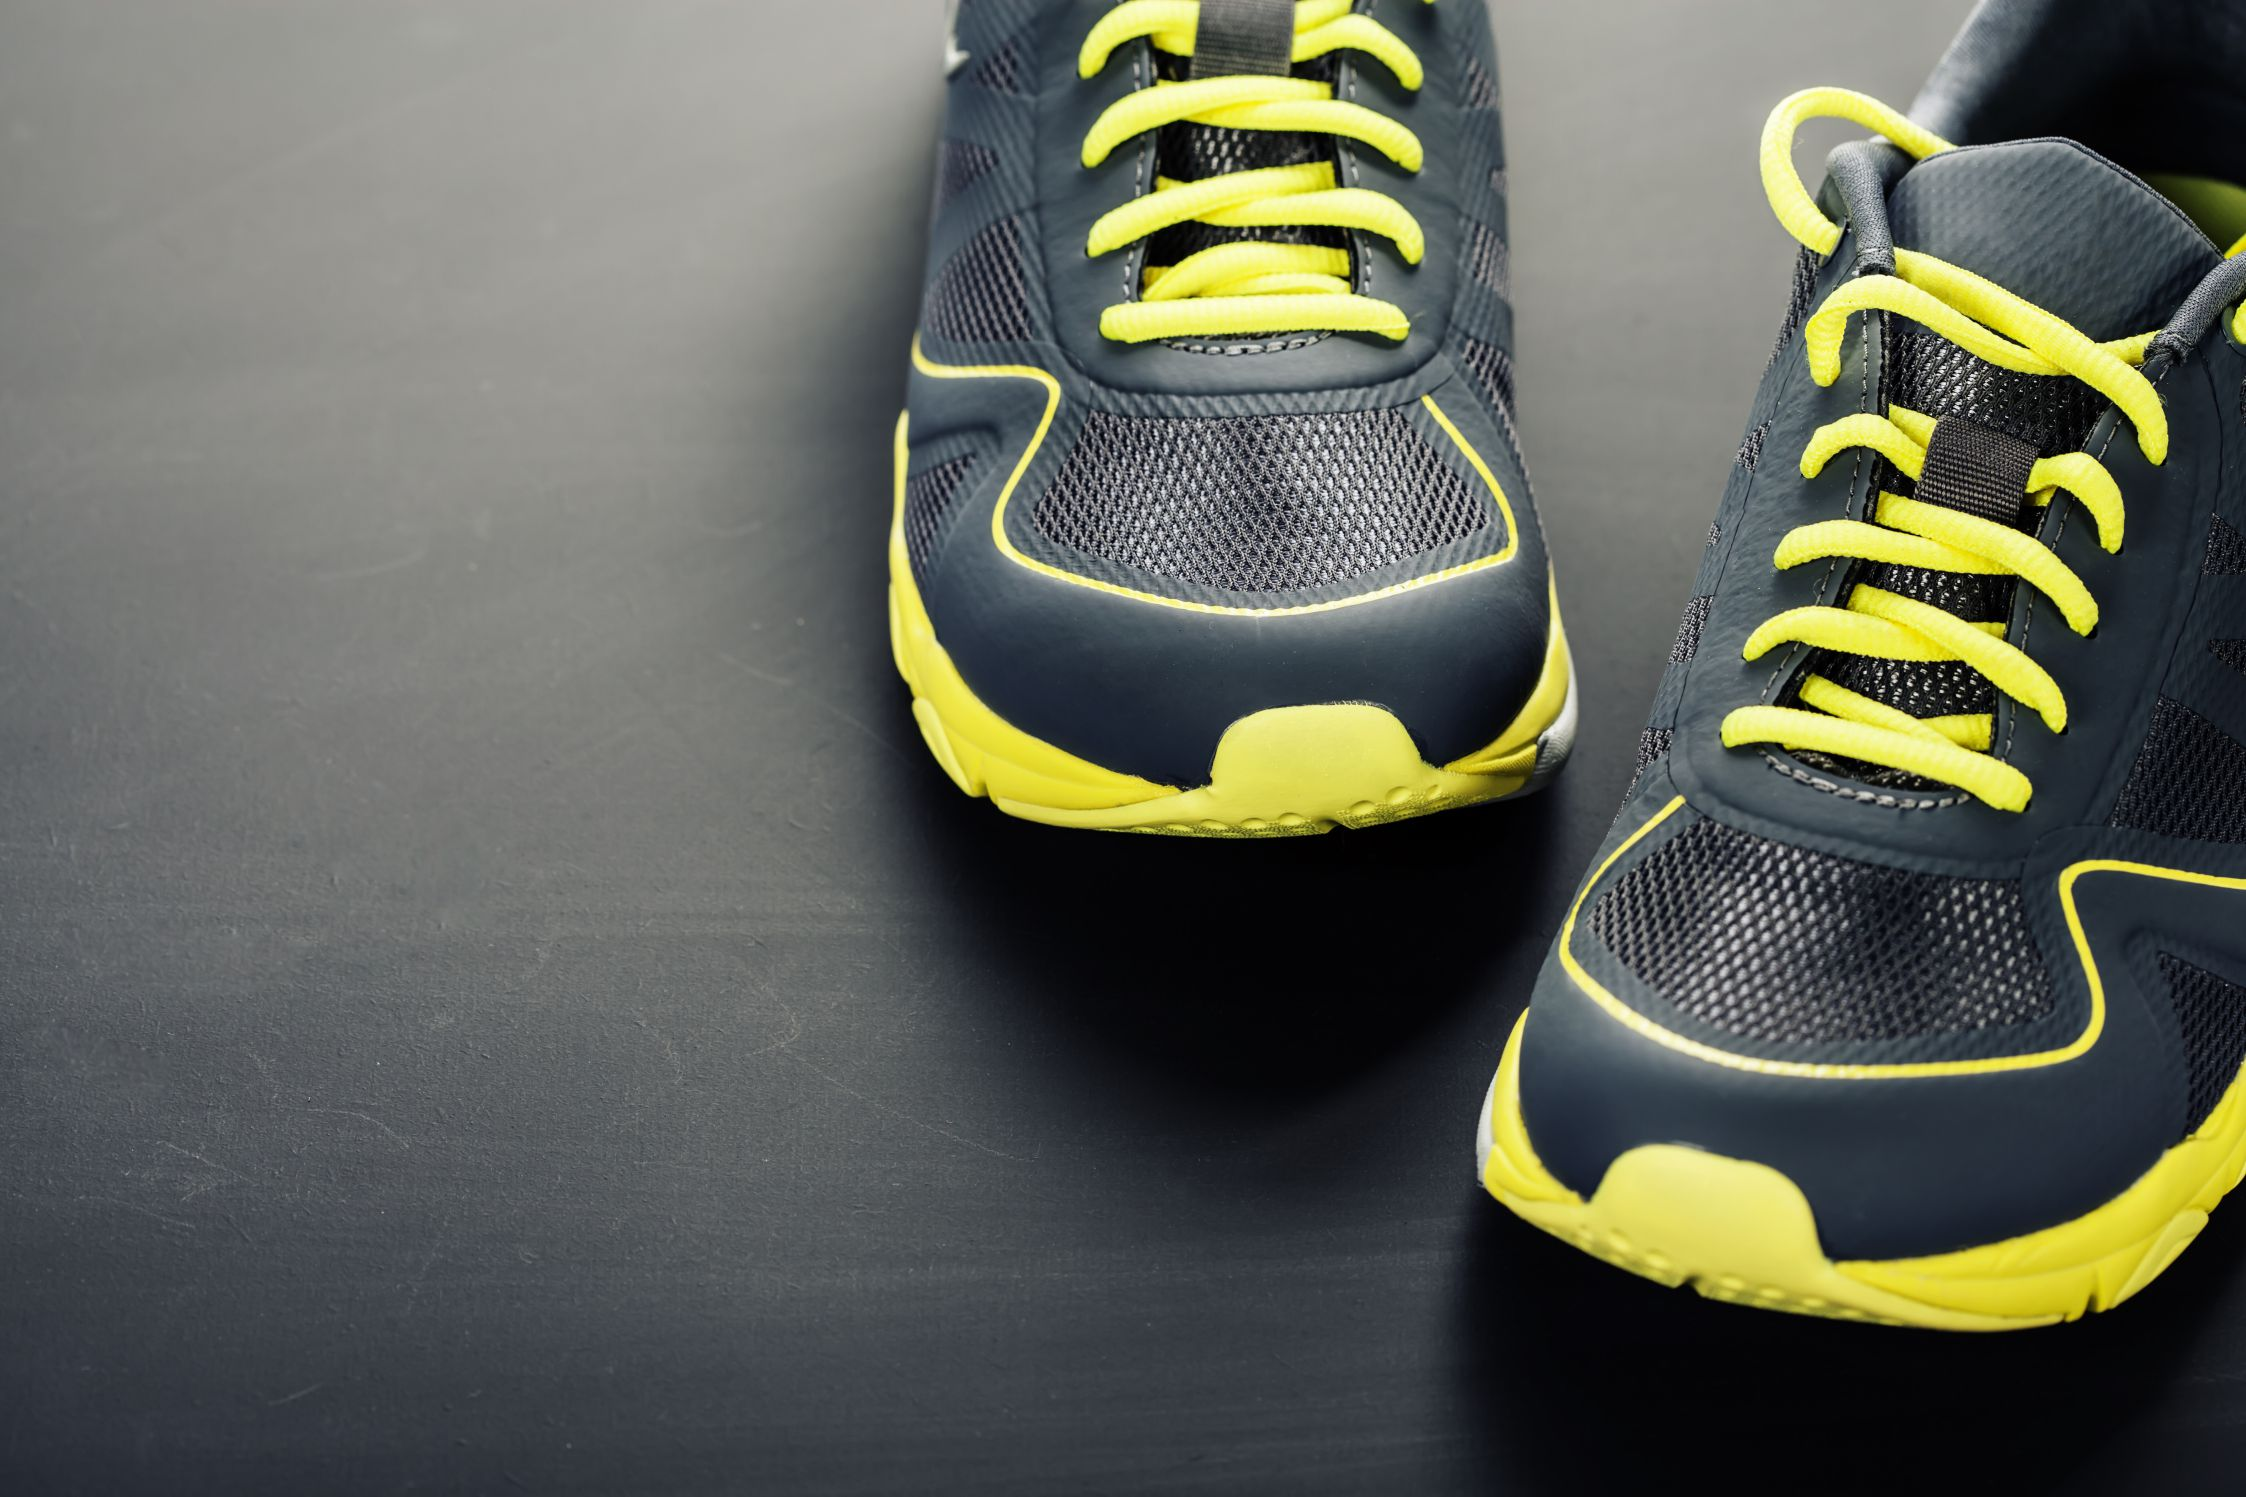 Sport shoes on grey background